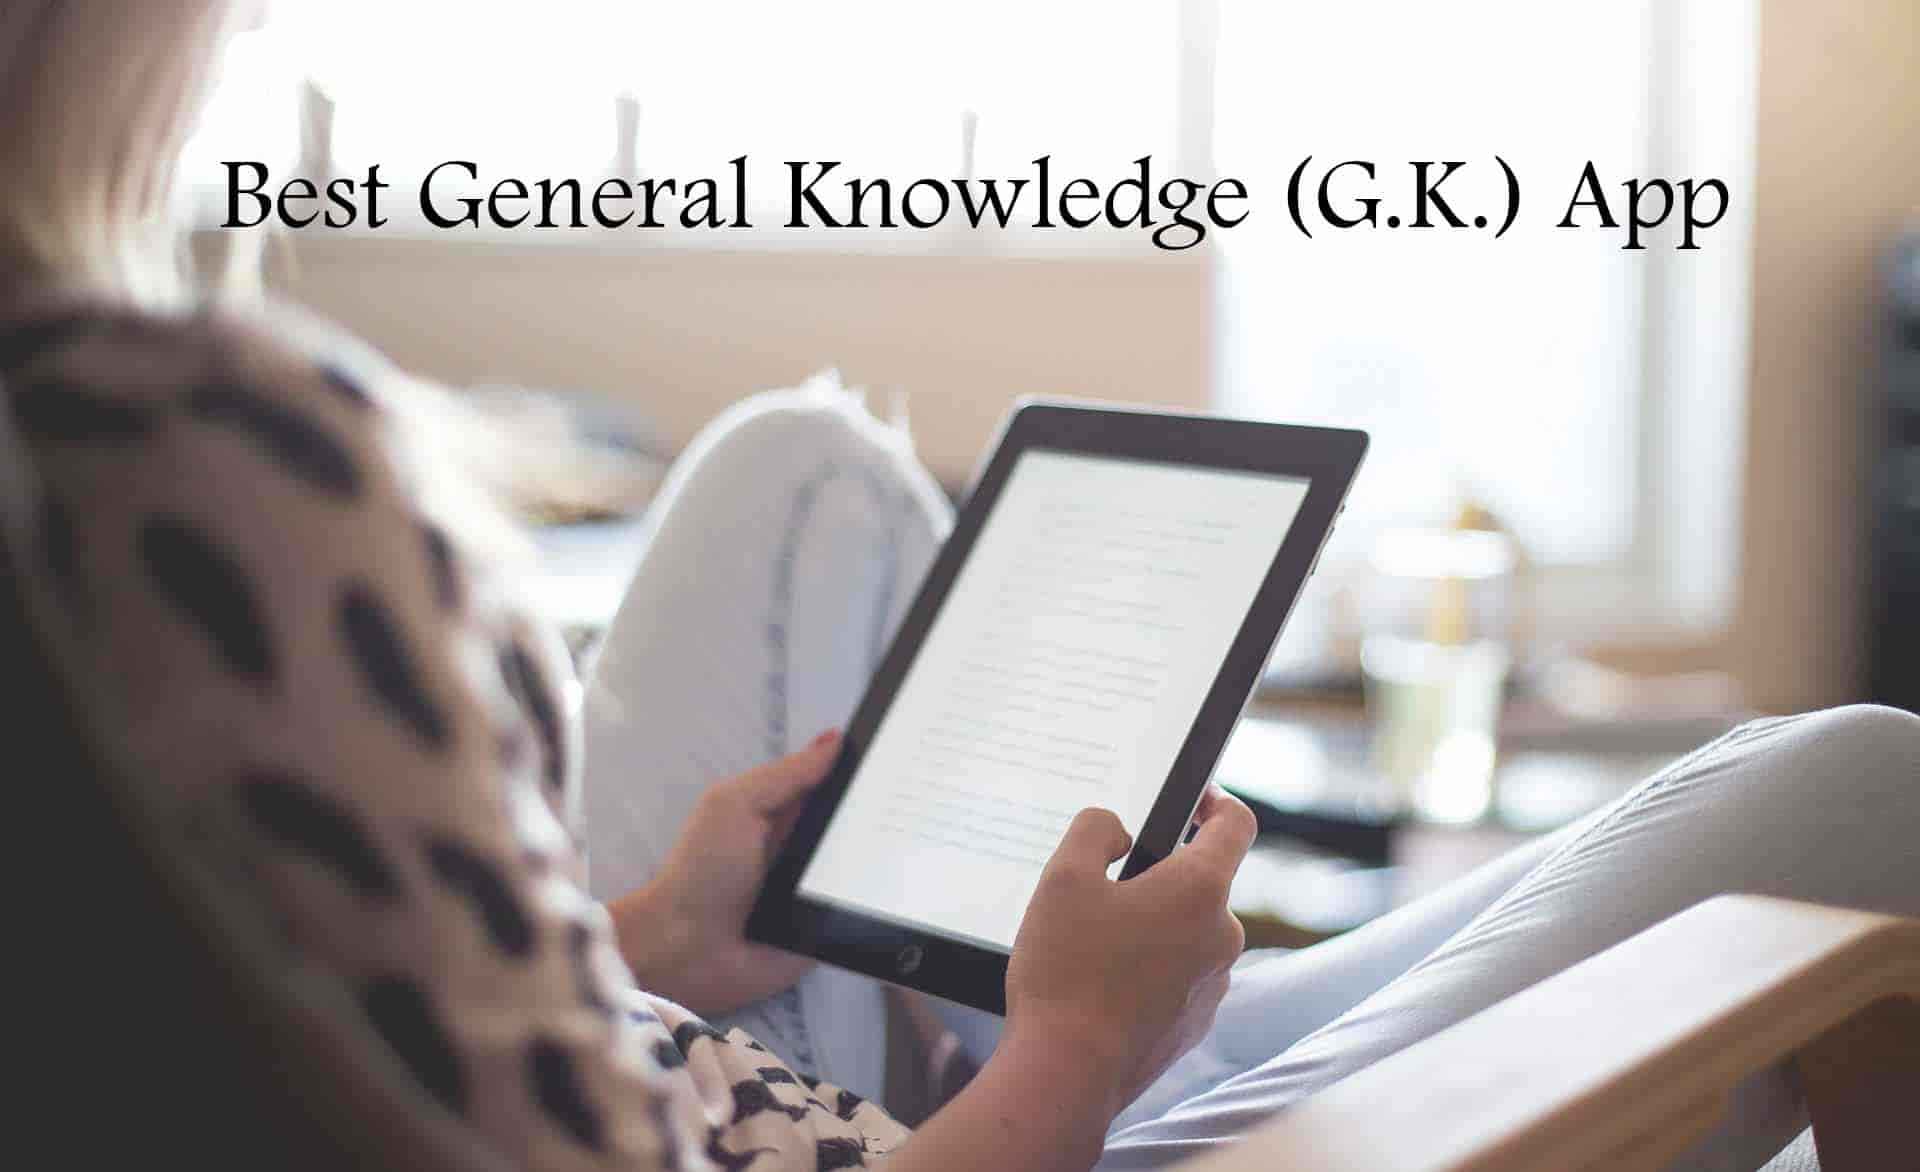 Best General Knowledge App